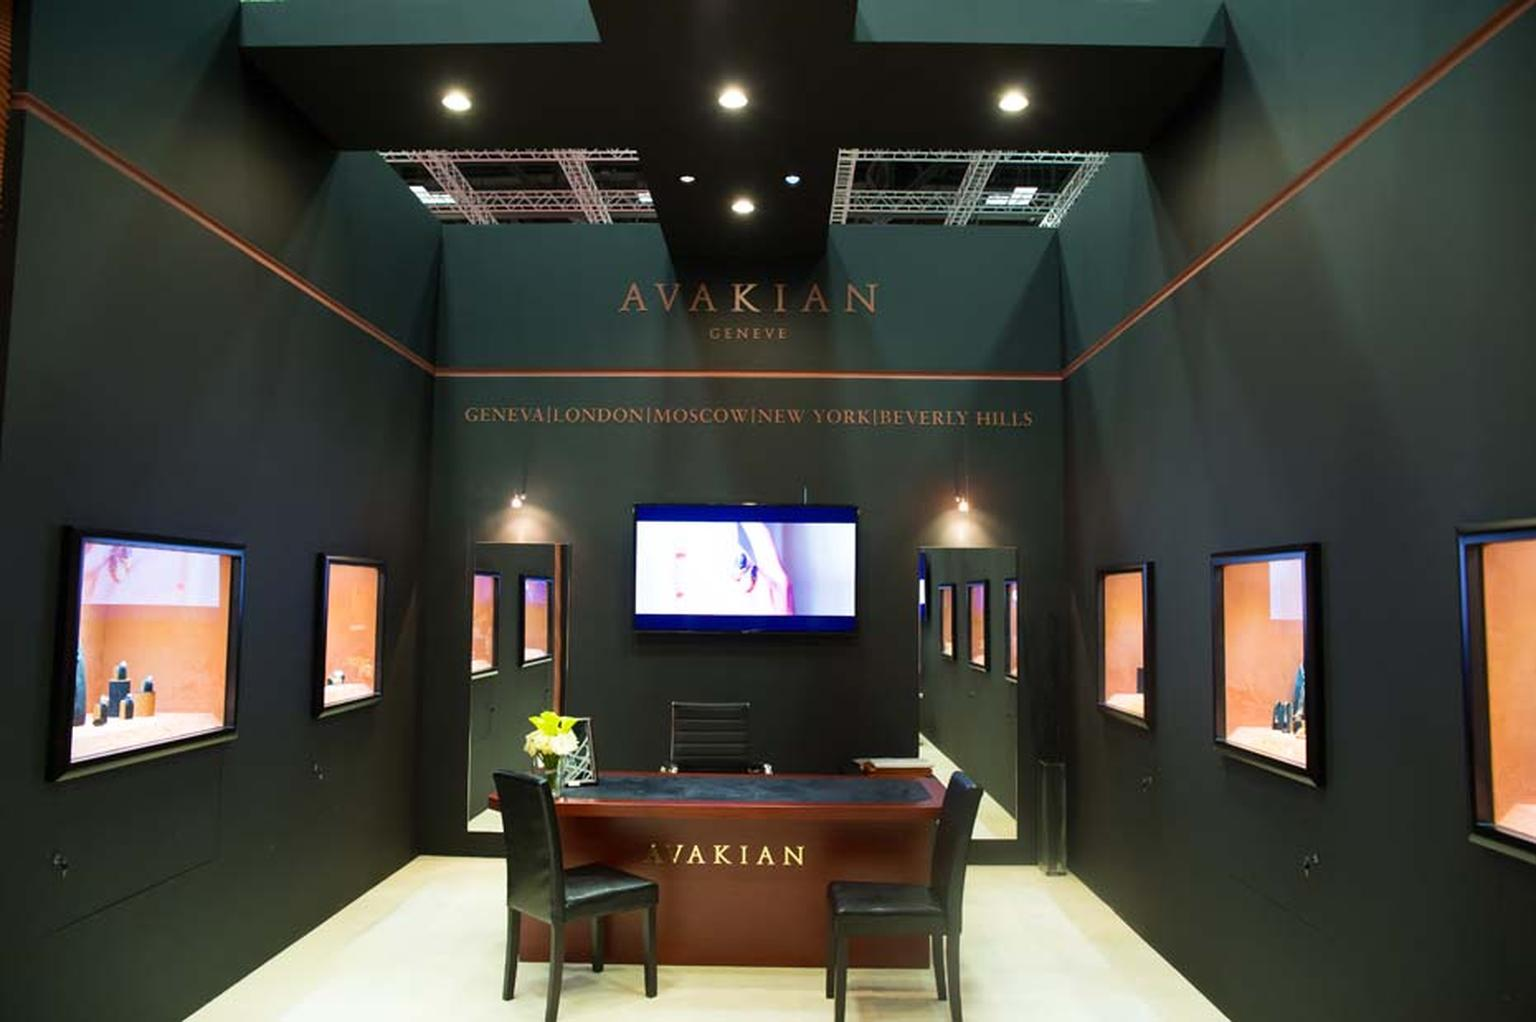 International Jewellery house Avakian will be showing a selection of its high jewellery, influenced by colourful stones and bold designs, at the DJWE.